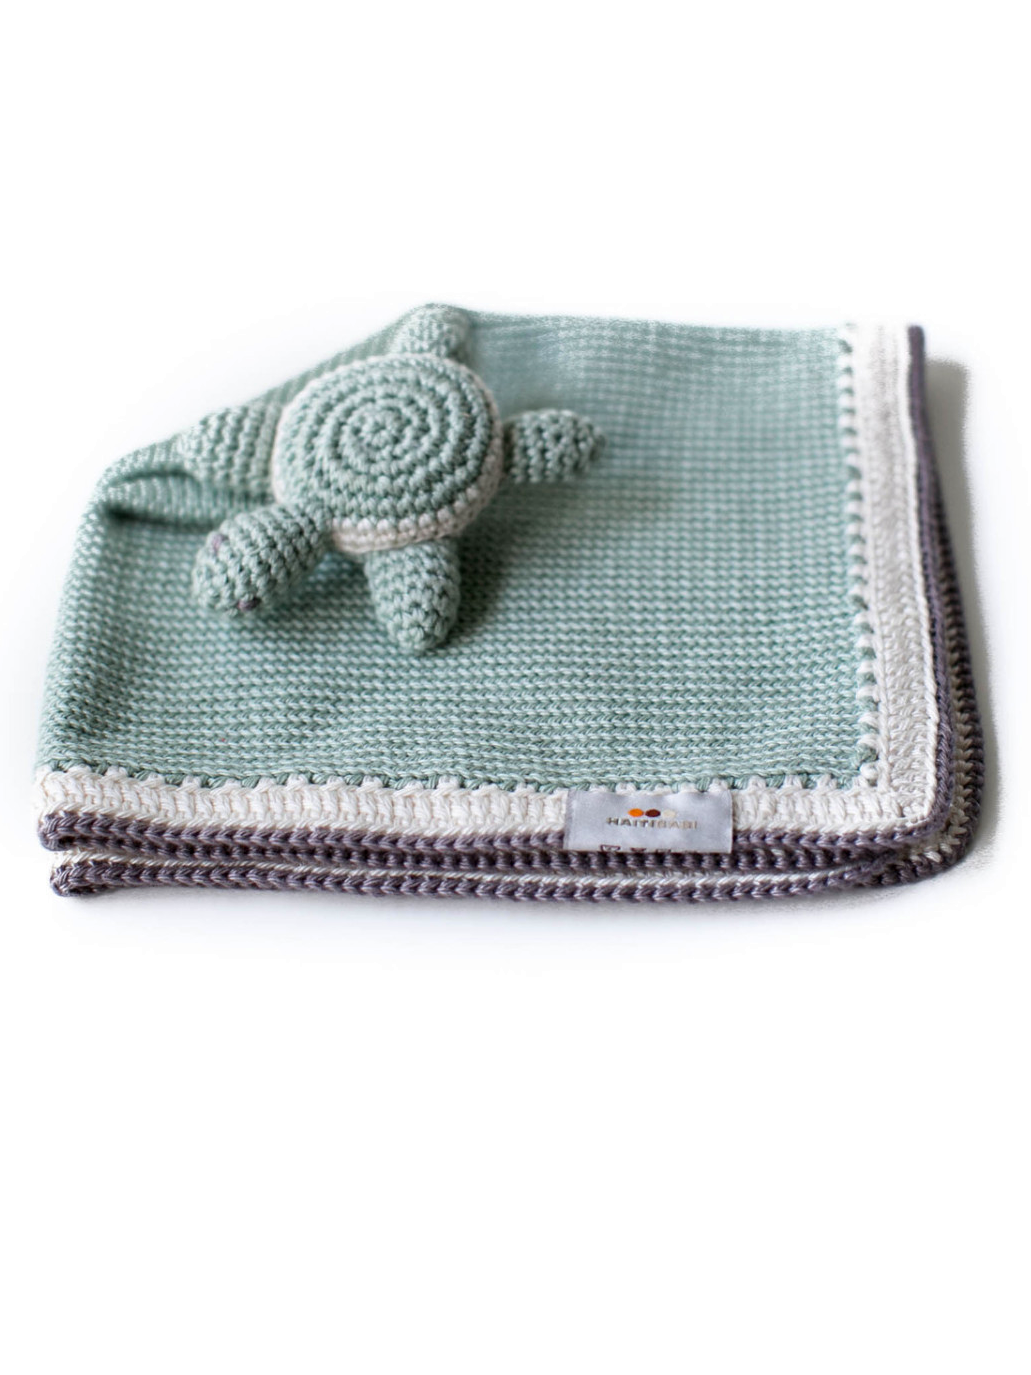 Turtle Baby Lovie Blanket